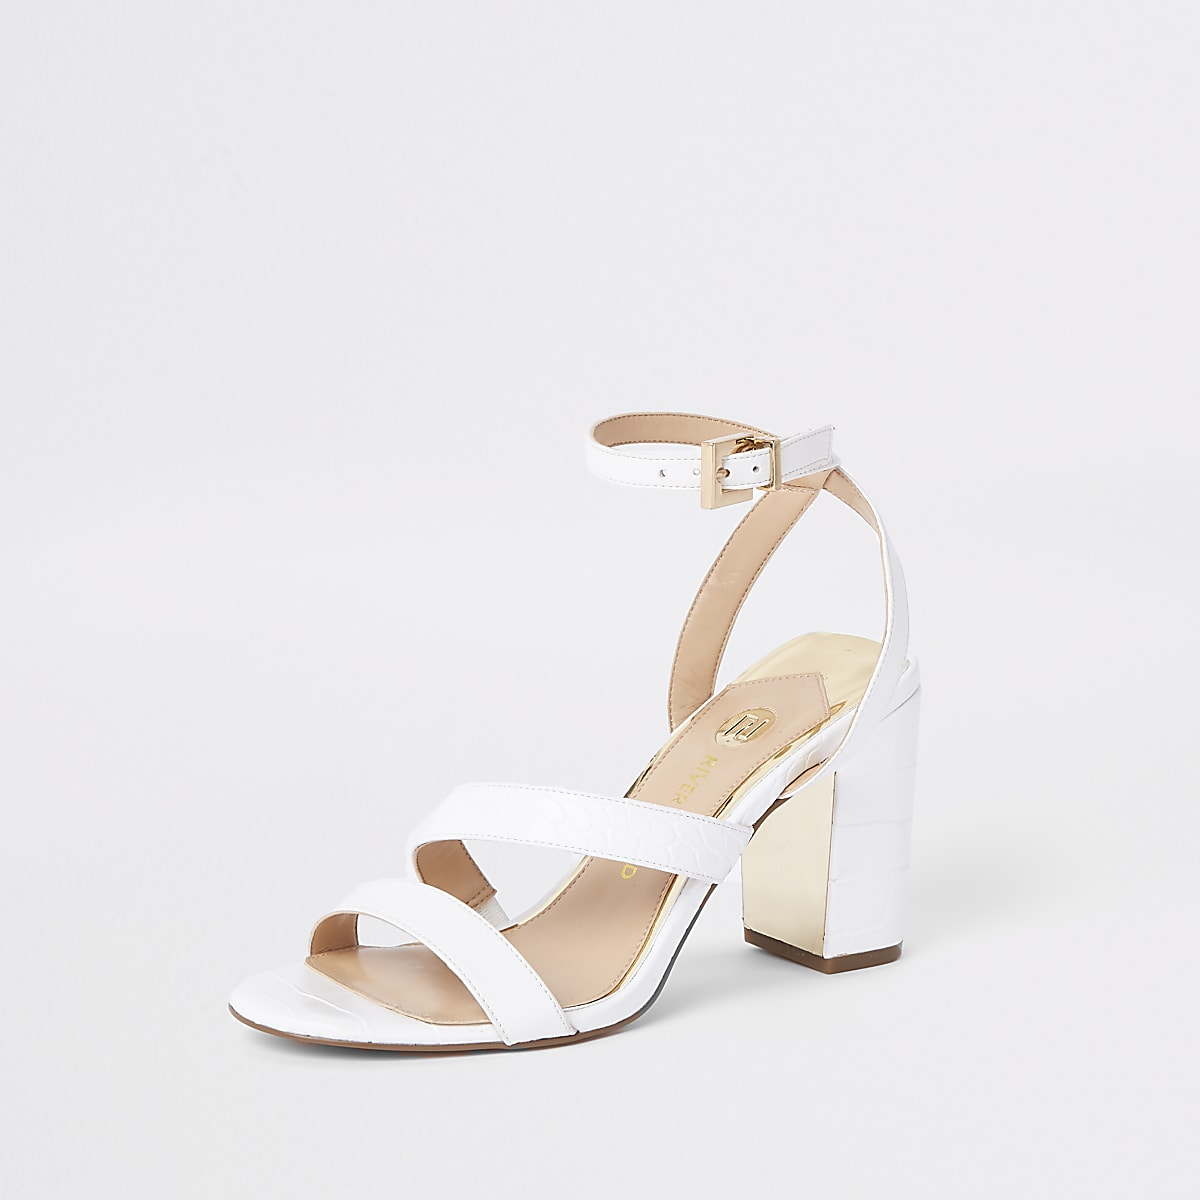 6a4ef48c5fb White asymmetric strappy block heel sandals - Sandals - Shoes ...